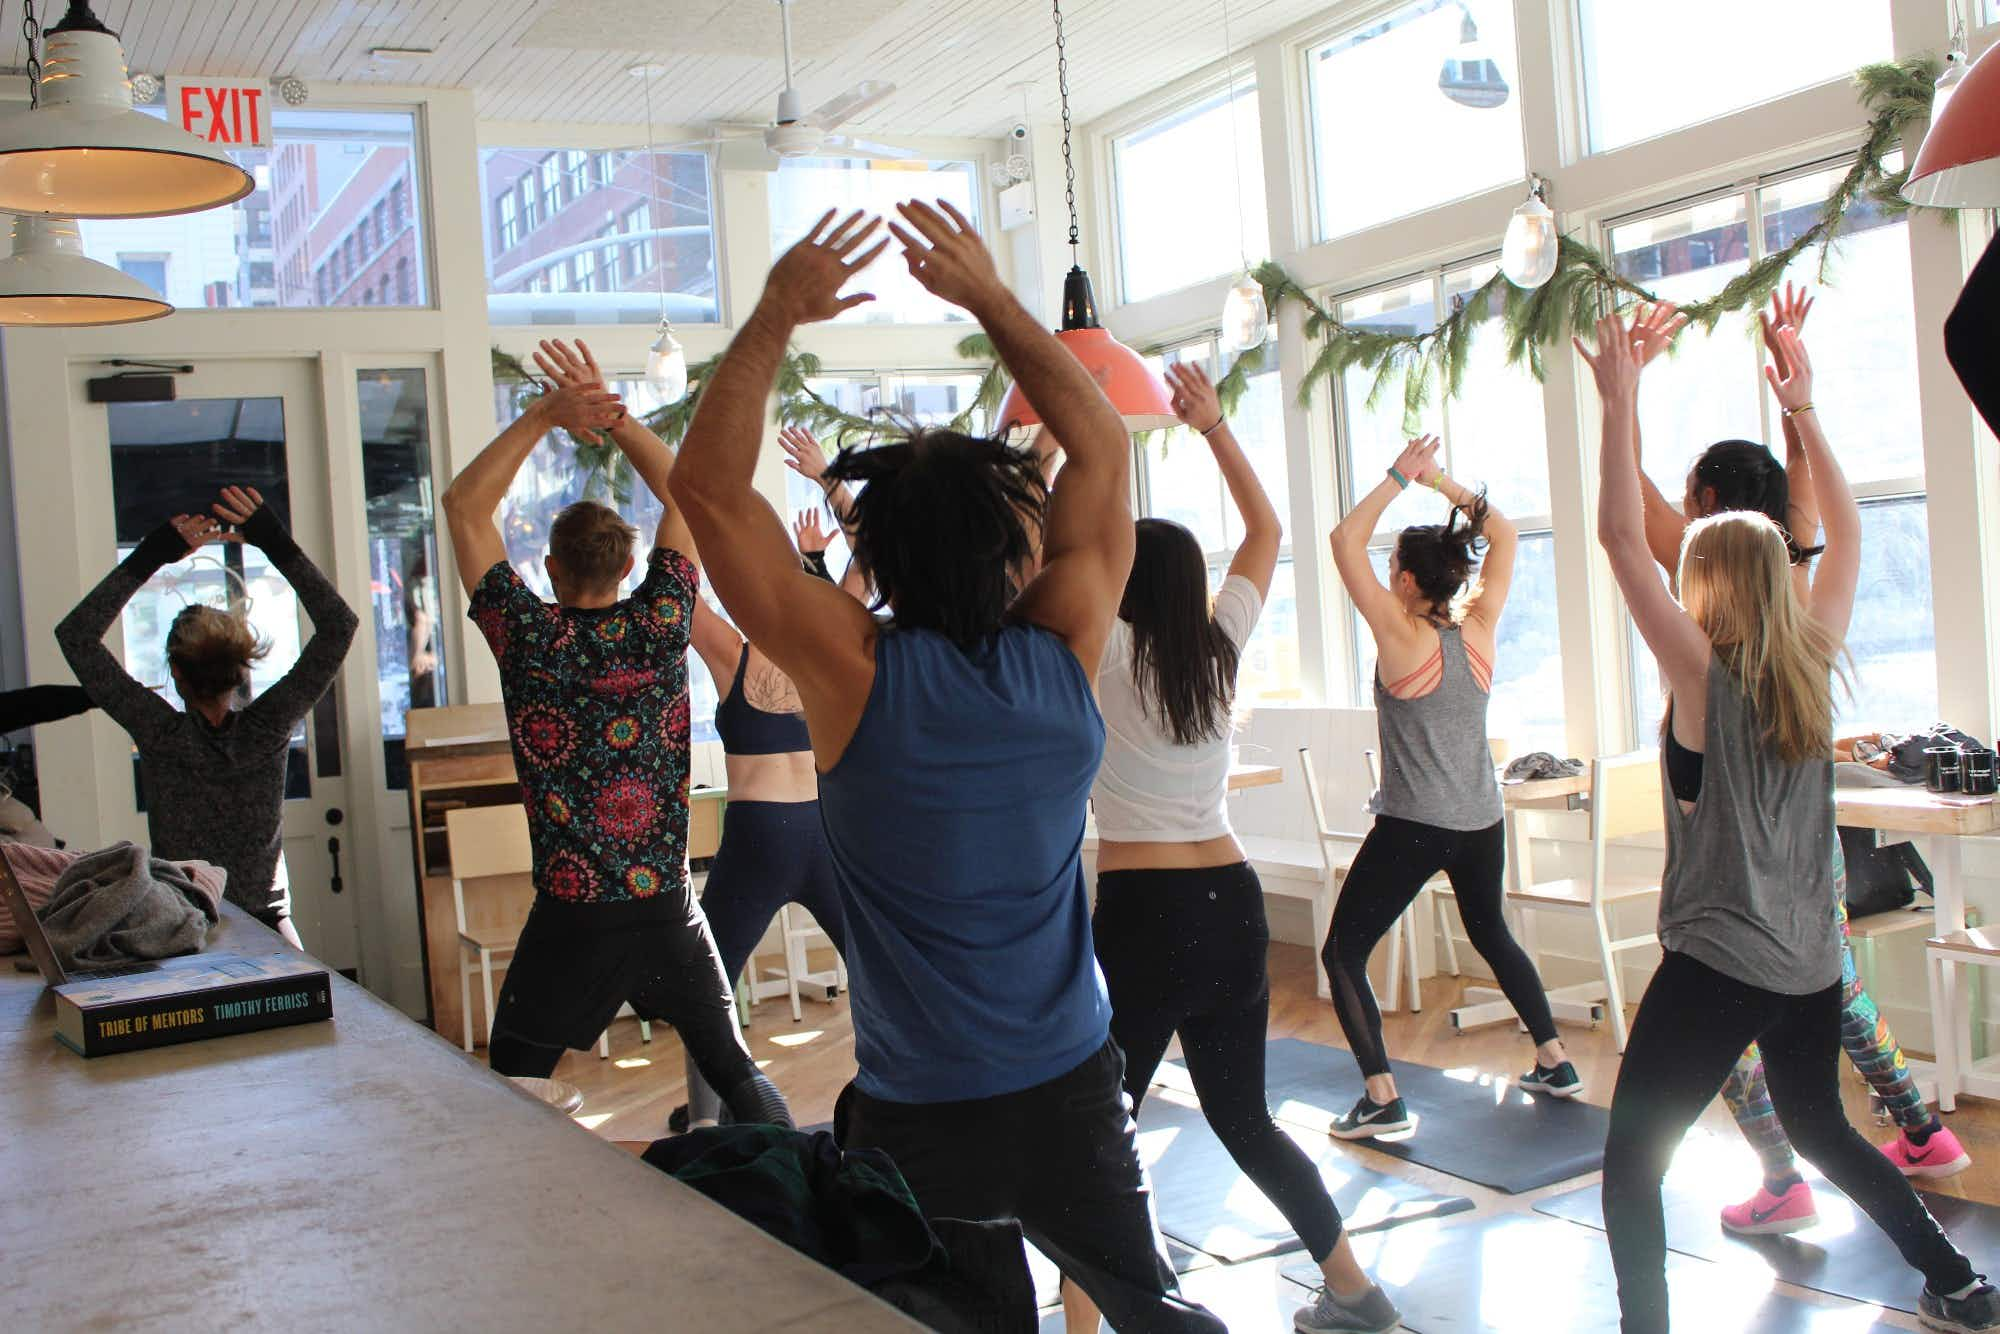 Workout while you brunch in this NYC spot -  combining burpees and Bloody Marys